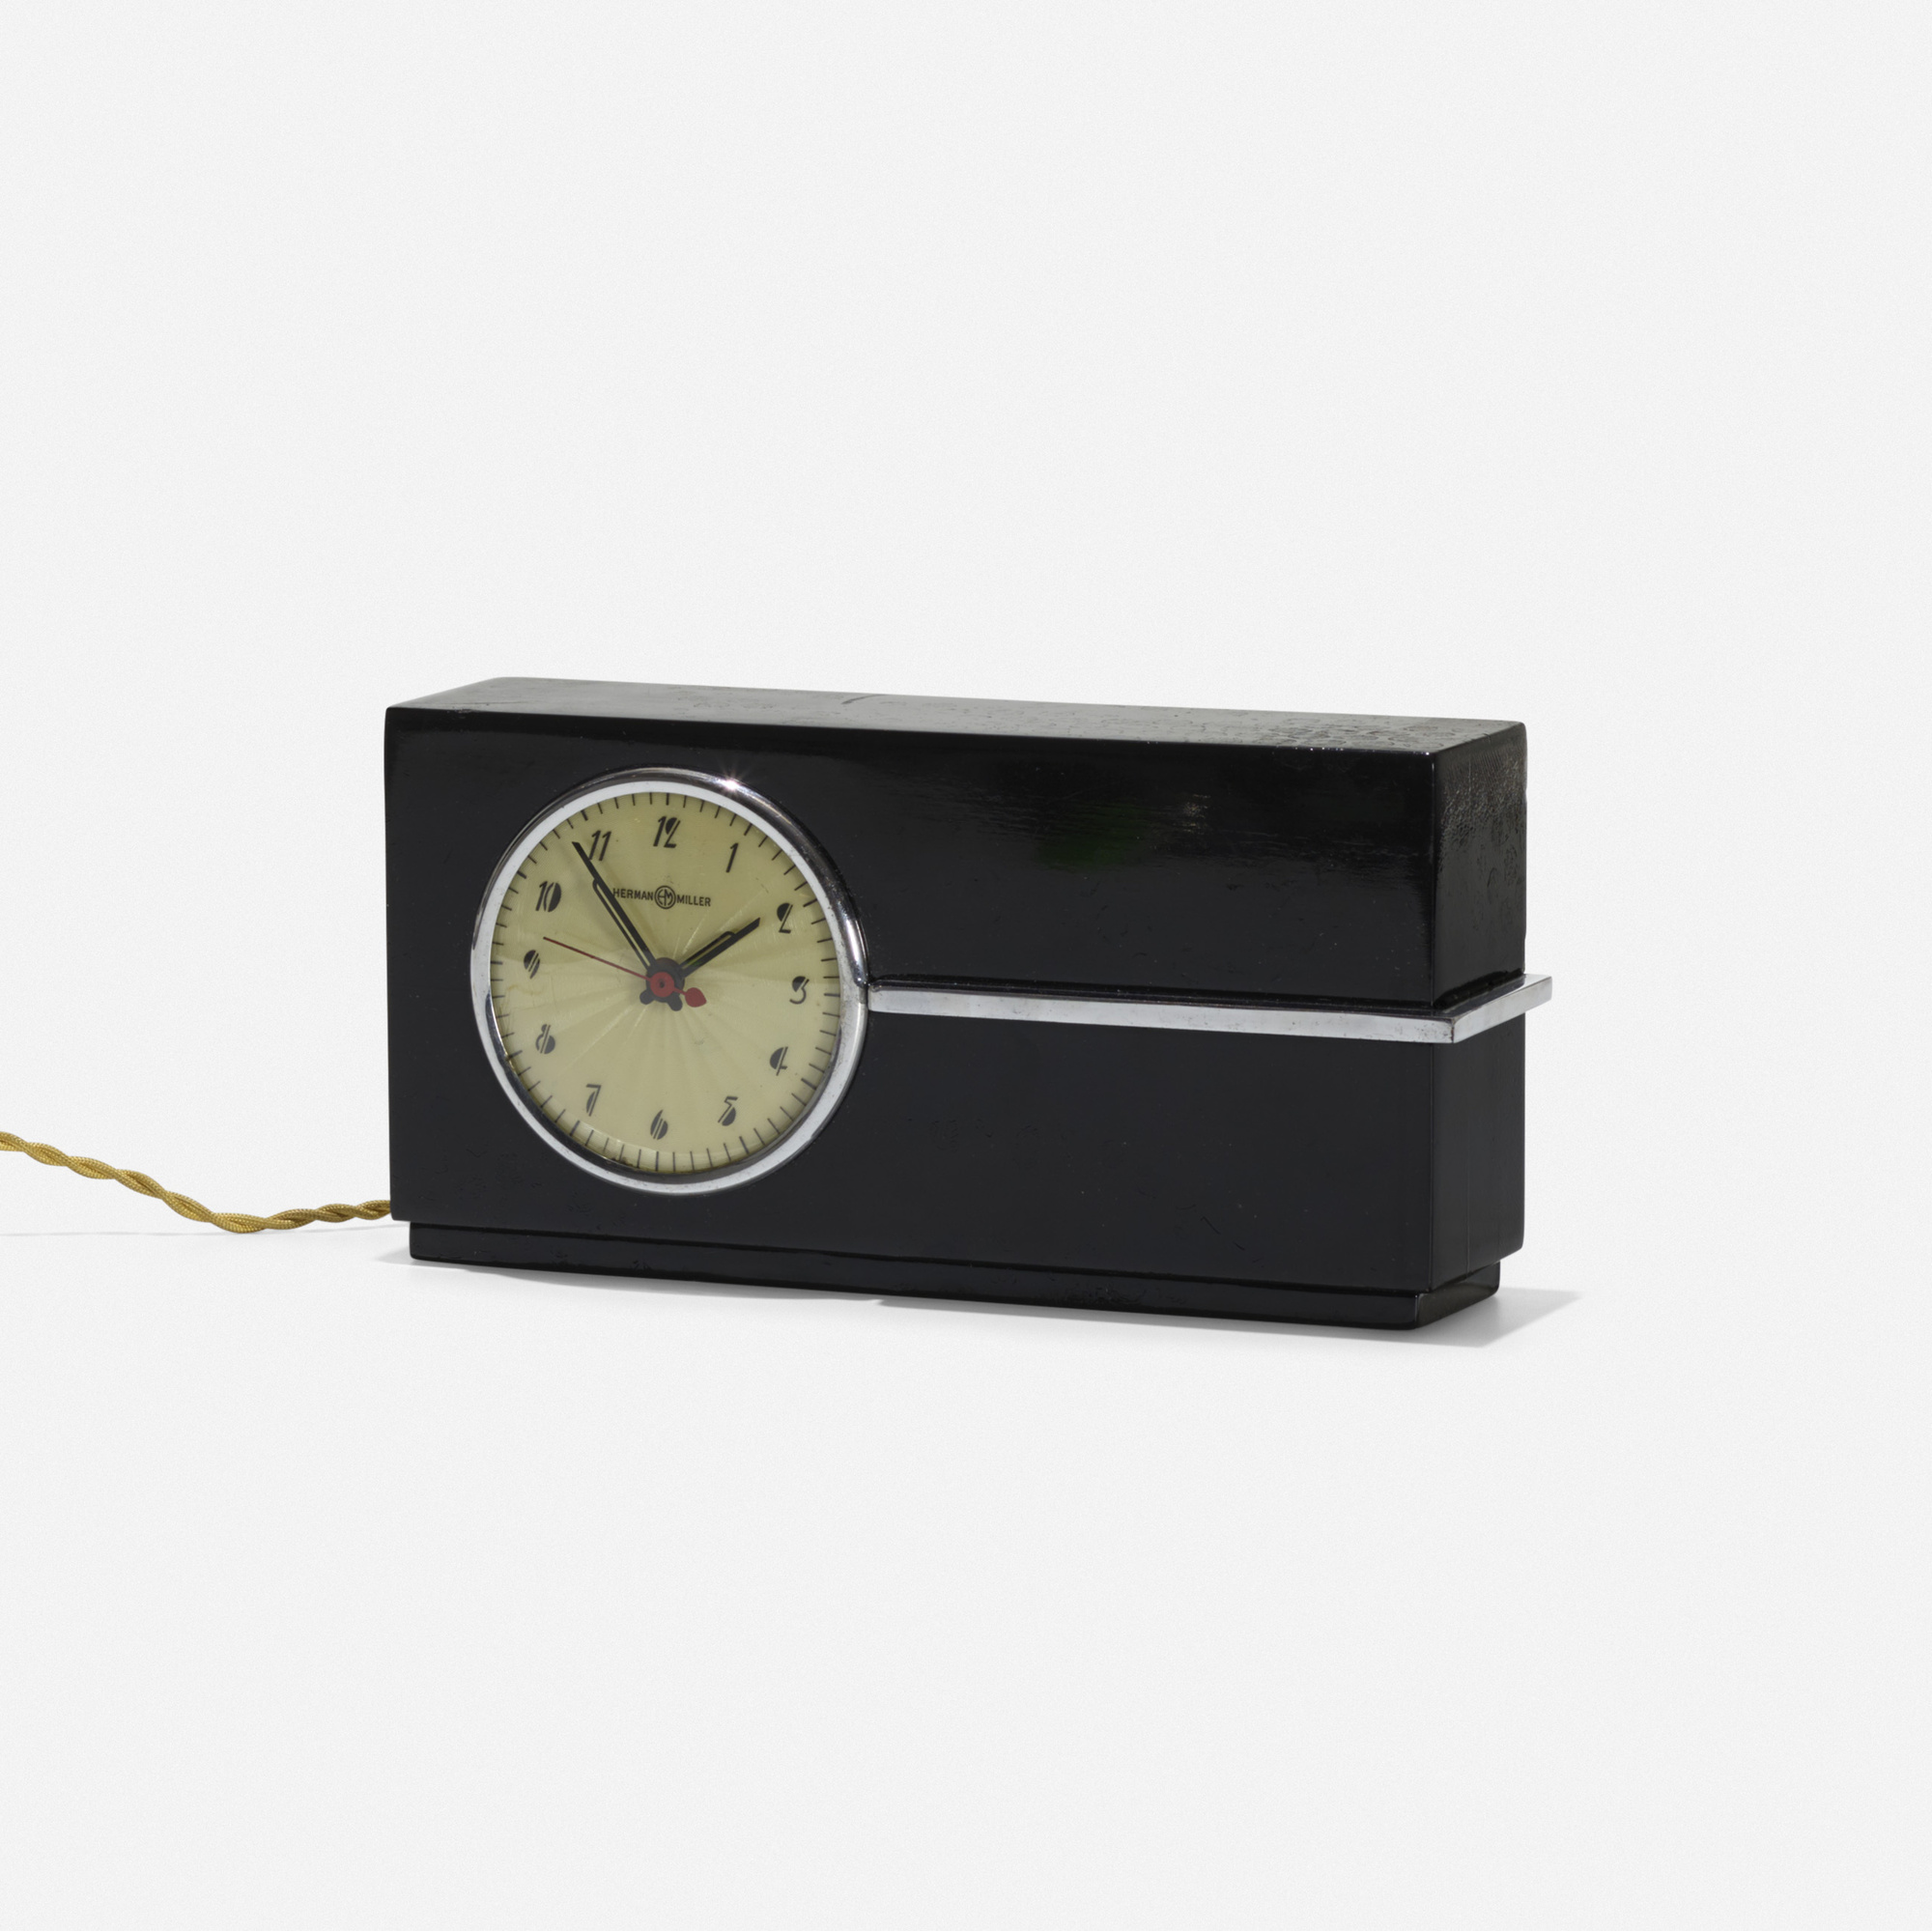 177: Gilbert Rohde / table clock (1 of 3)